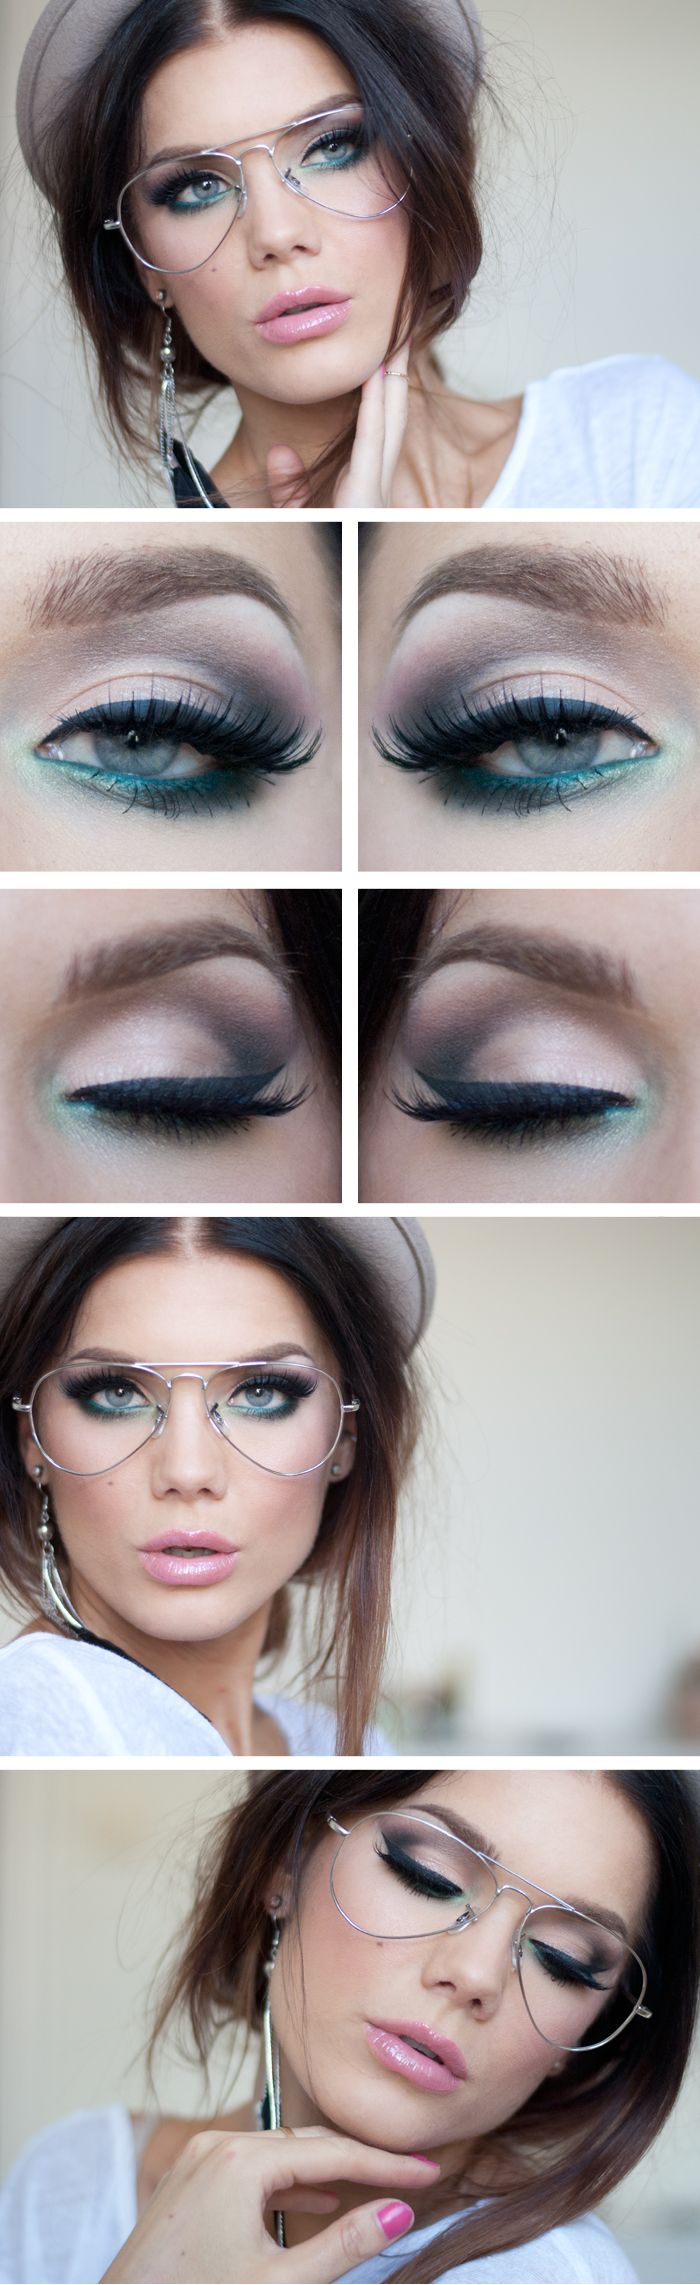 Love the teal smudged on the lower lash line! And everybody loves a girl in glasses :)